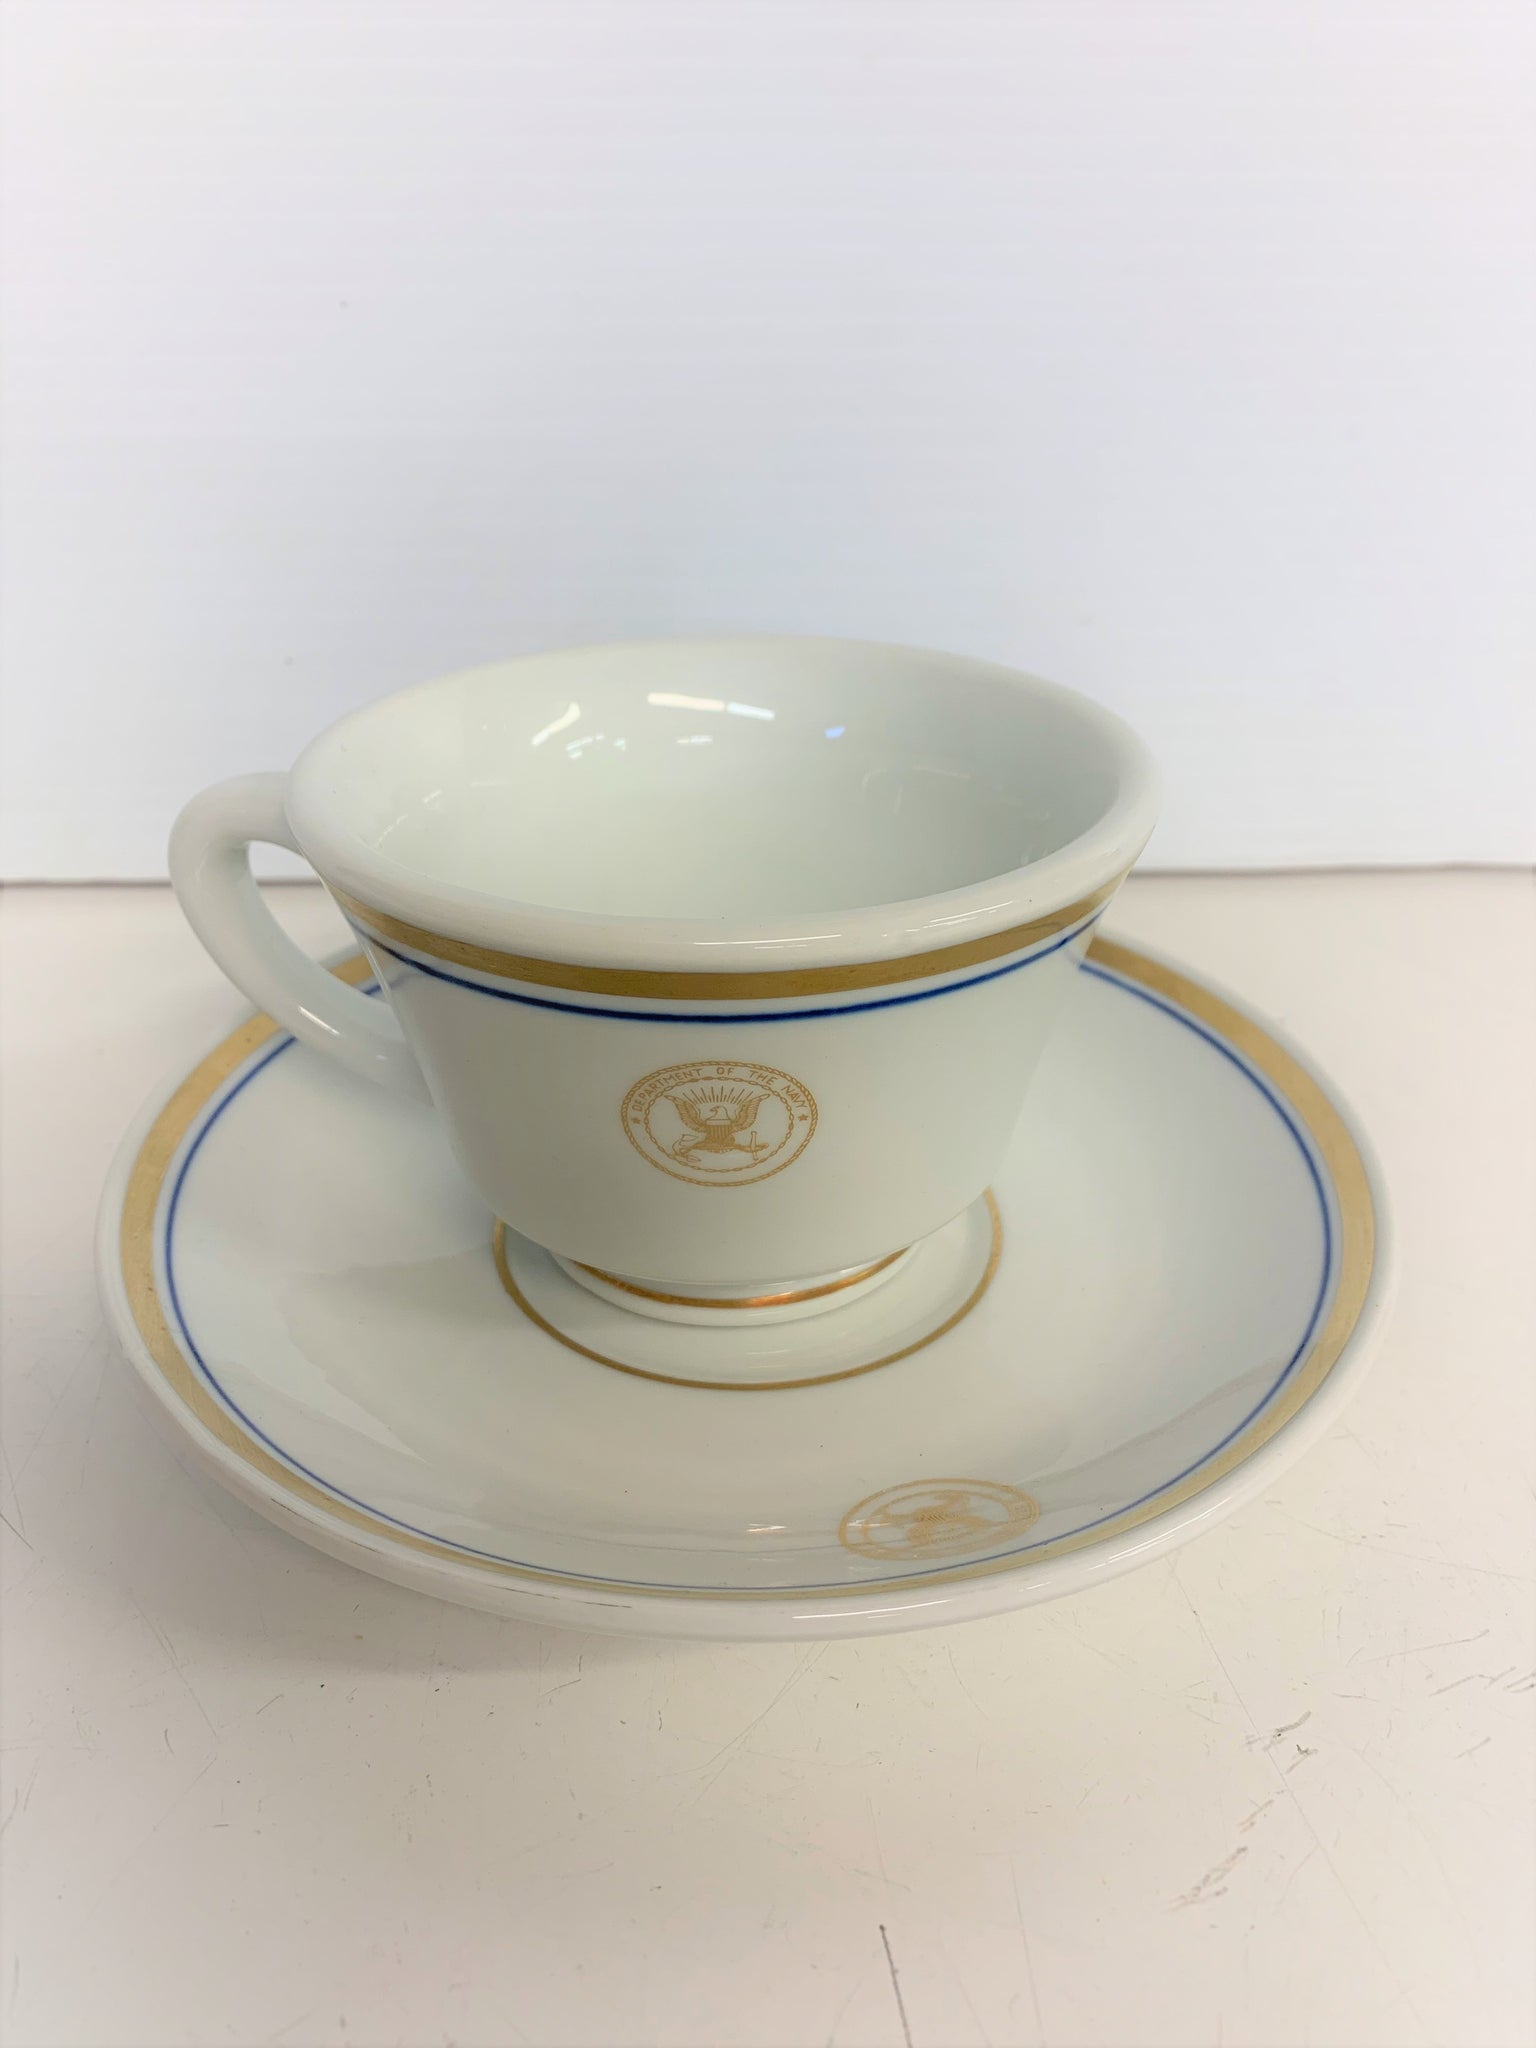 Vintage Department of the Navy Restaurant Ware Coffee Cups Inter-American